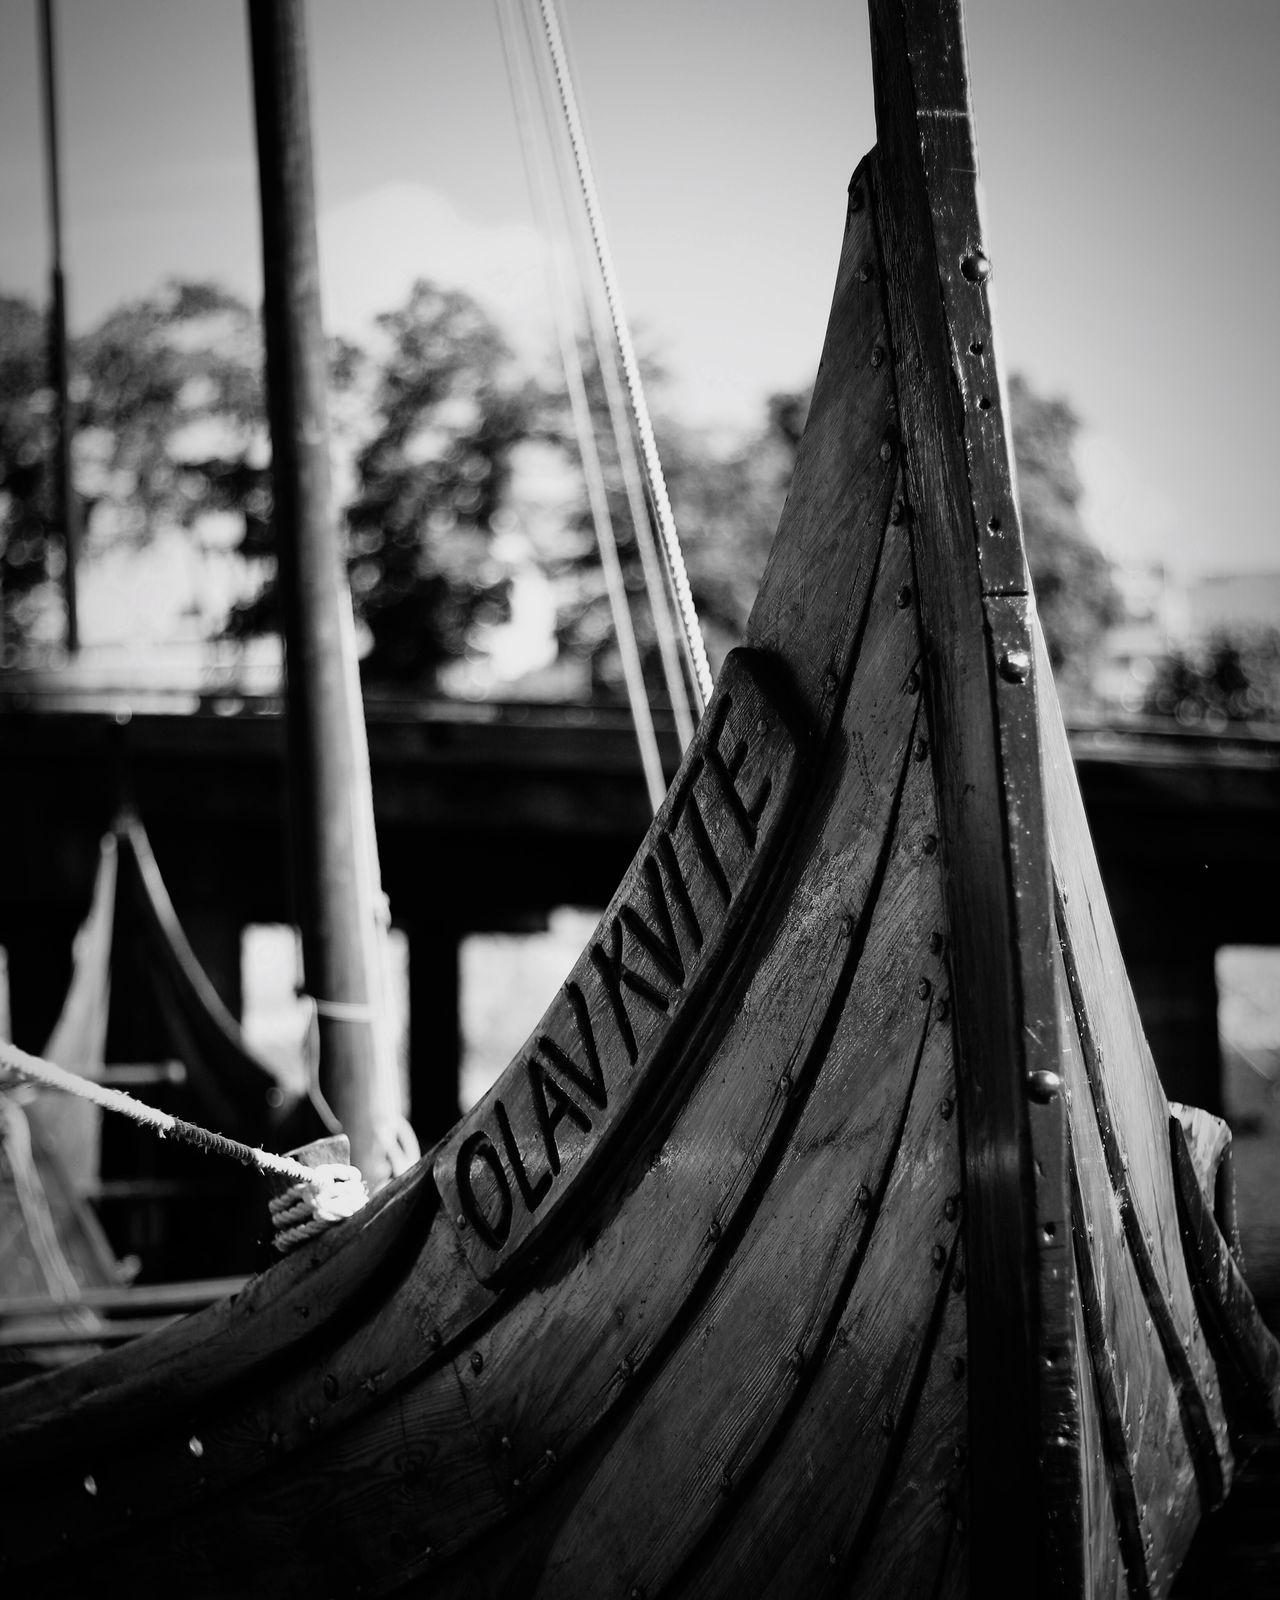 """The Vikings has Entered"" - Boat Outdoors No People Nautical Vessel Mode Of Transport Moored Water Viking Ship Viking Boat Viking Vessel Olav Kvite First Eyeem Photo EyeEmNewHere"